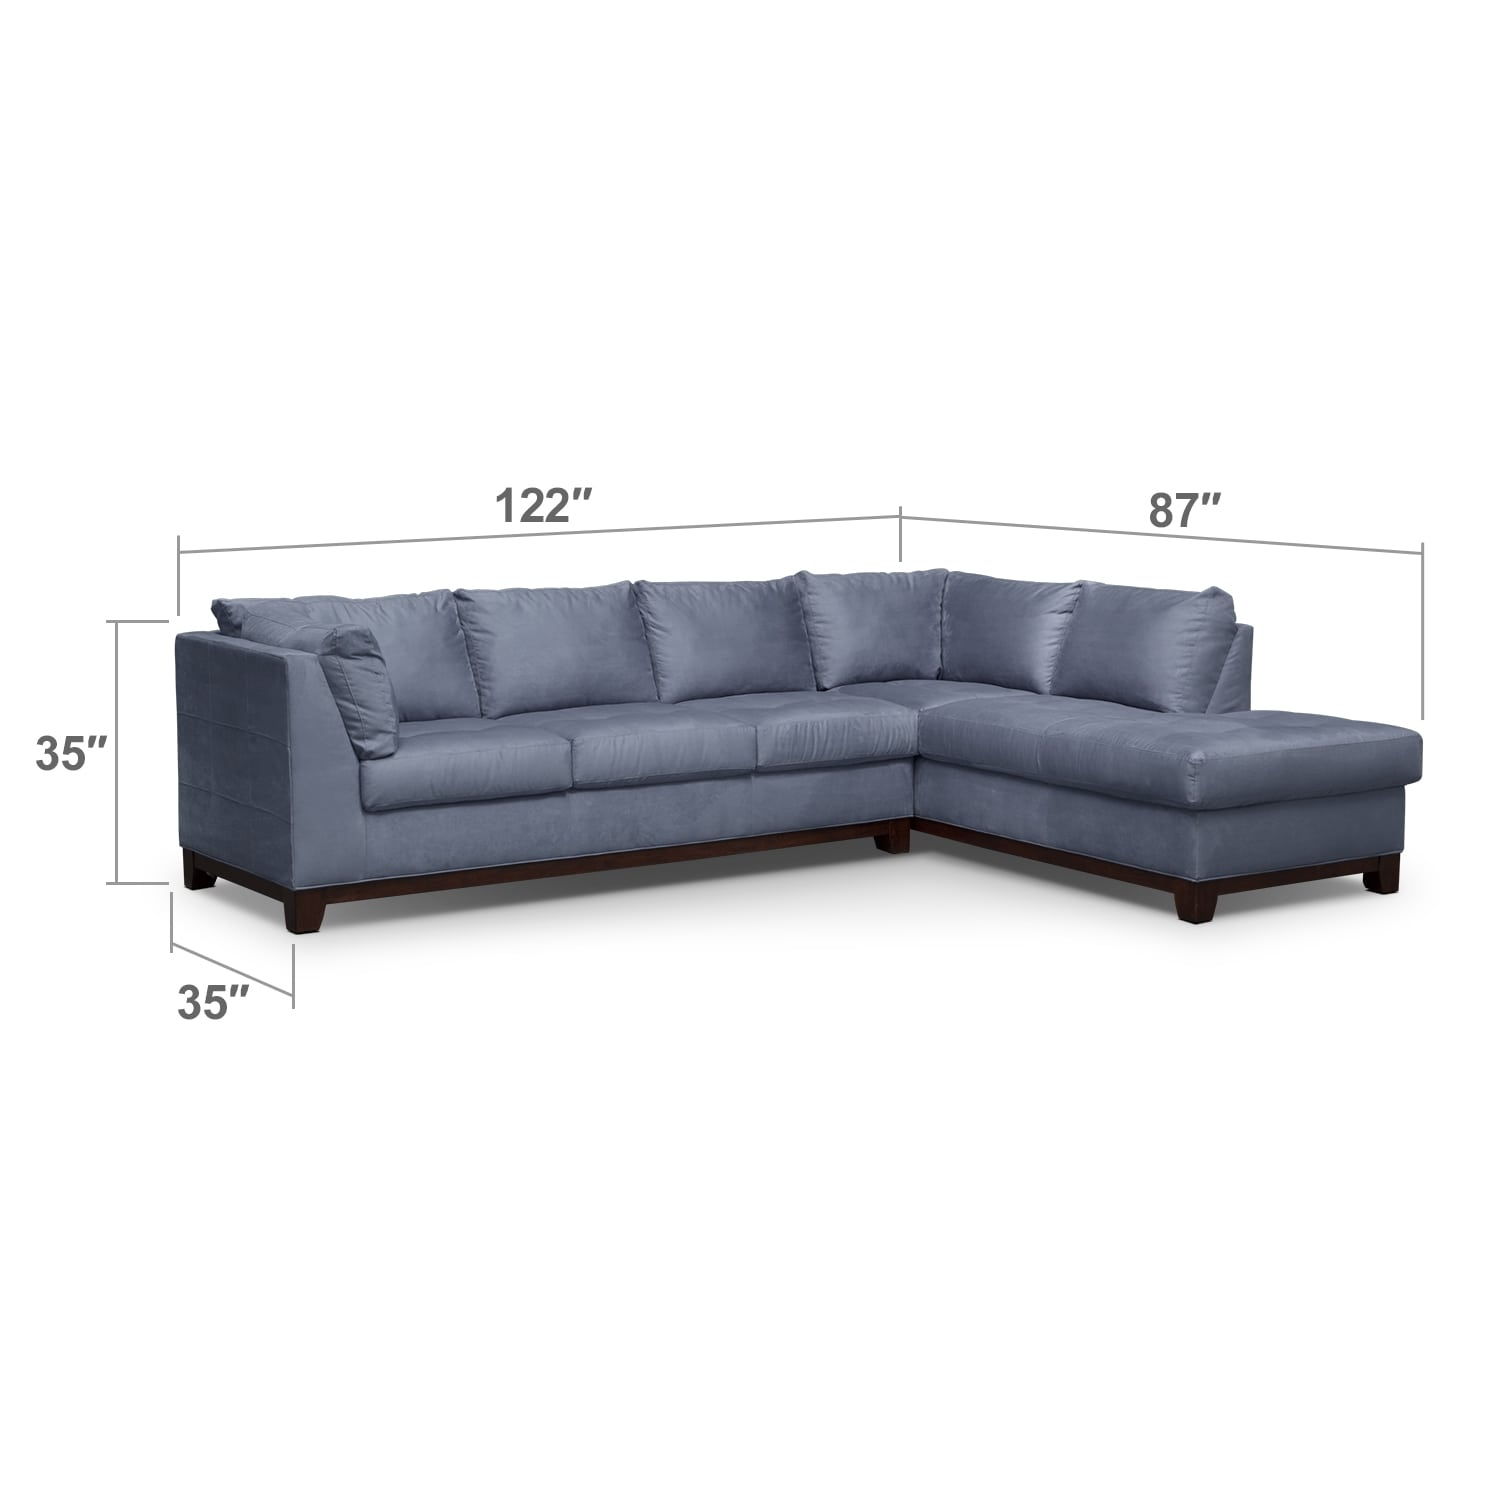 Living Room Furniture - Soho 2-Piece Sectional with Right-Facing Chaise - Steel